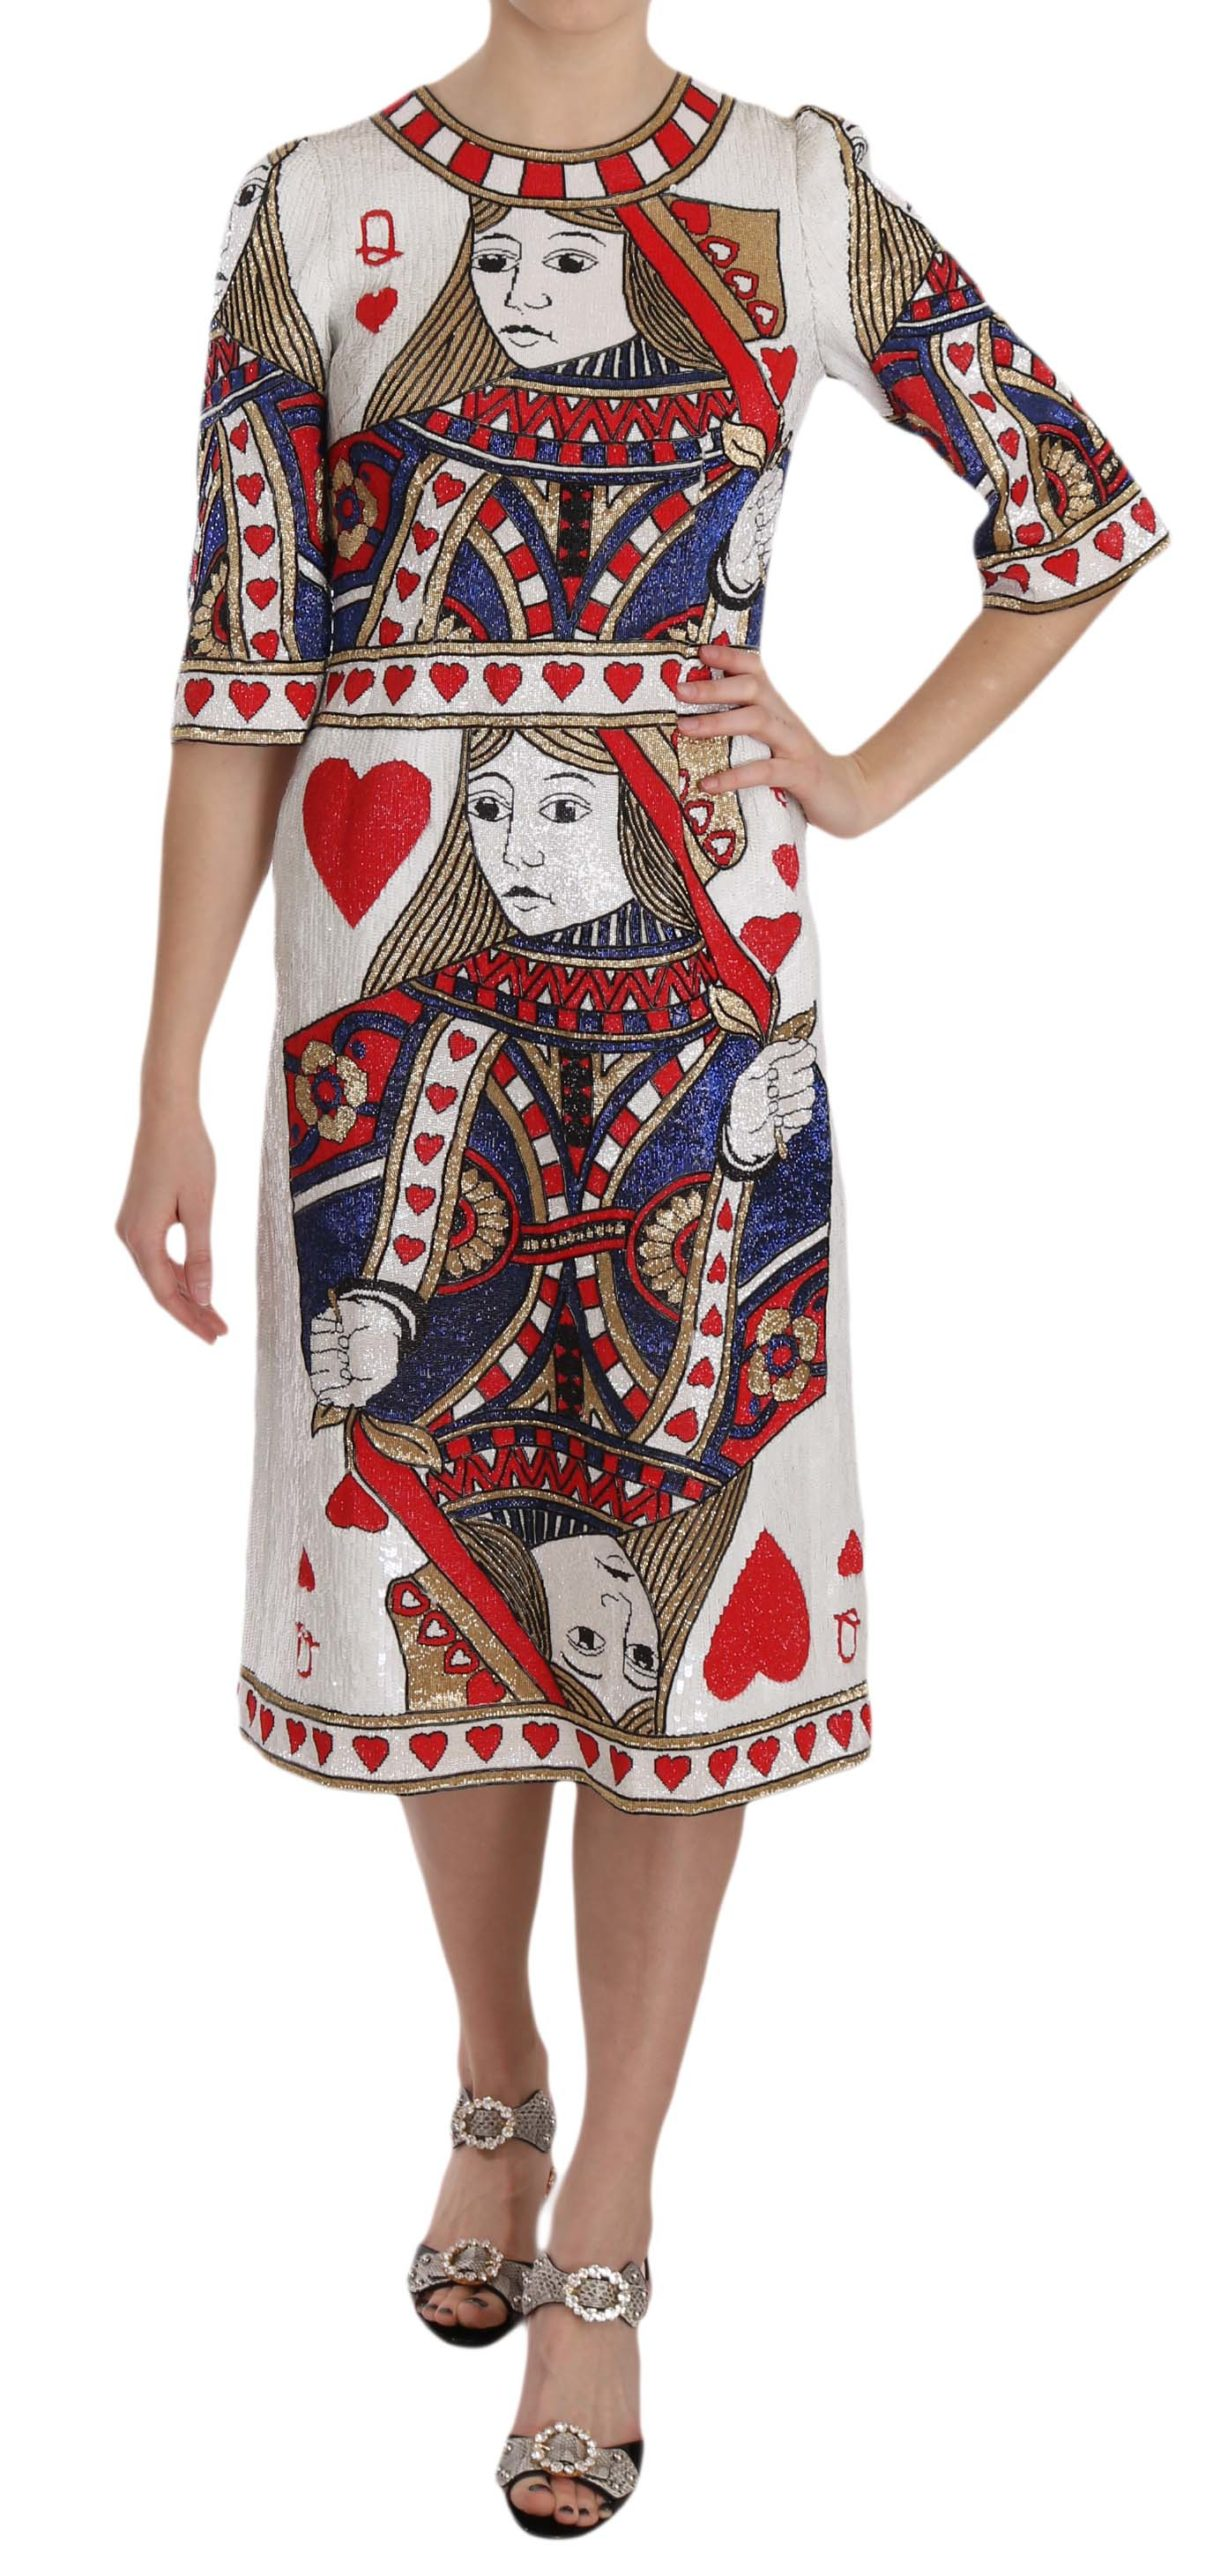 Dolce & Gabbana Women's Queen Of Hearts Card Sequined Dress Multicolor DR1652 - IT40 S